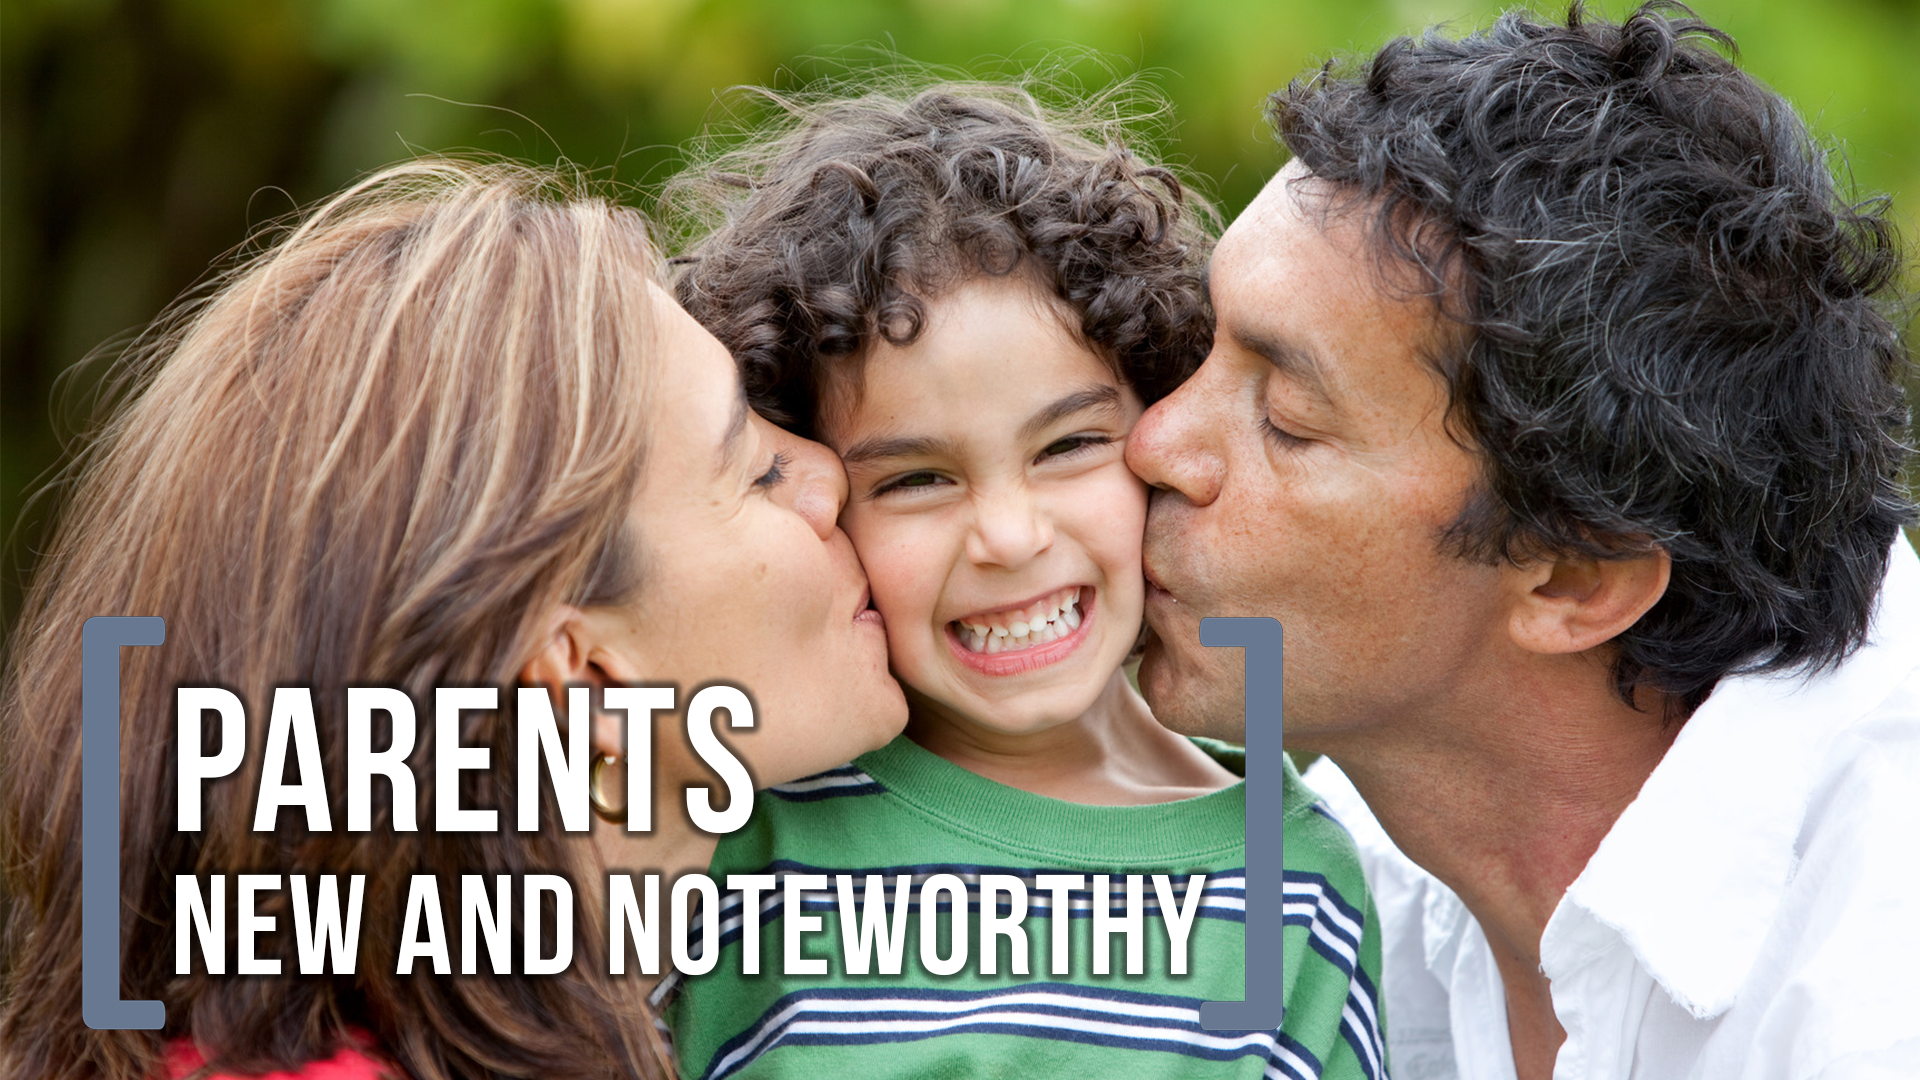 Learn what's new and noteworthy for GCPS Parents.